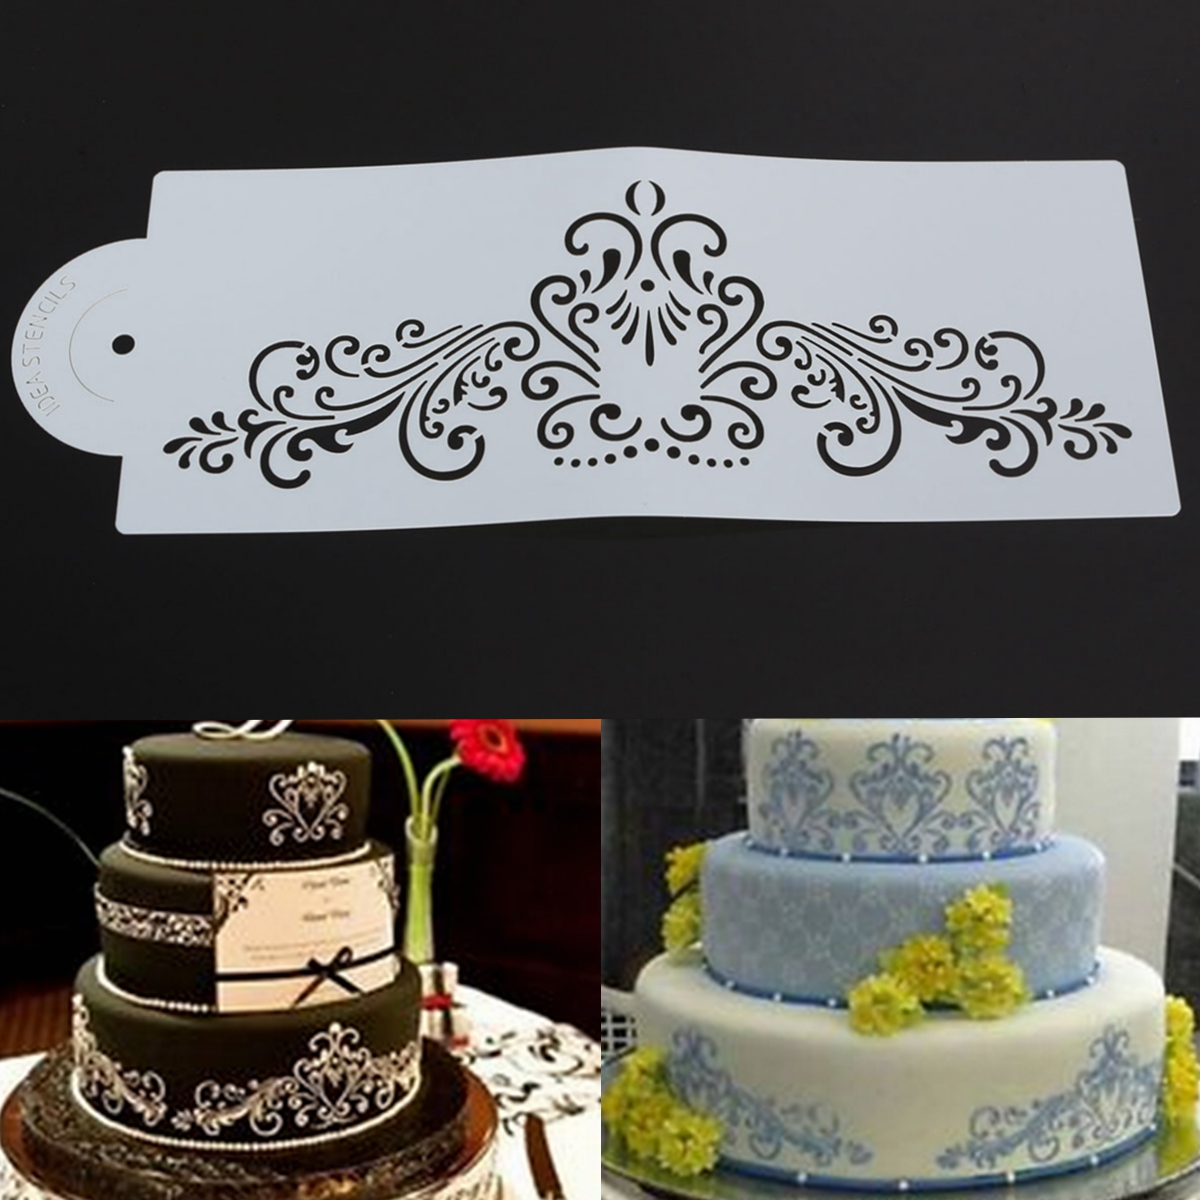 Cake Decorating Side Stencils